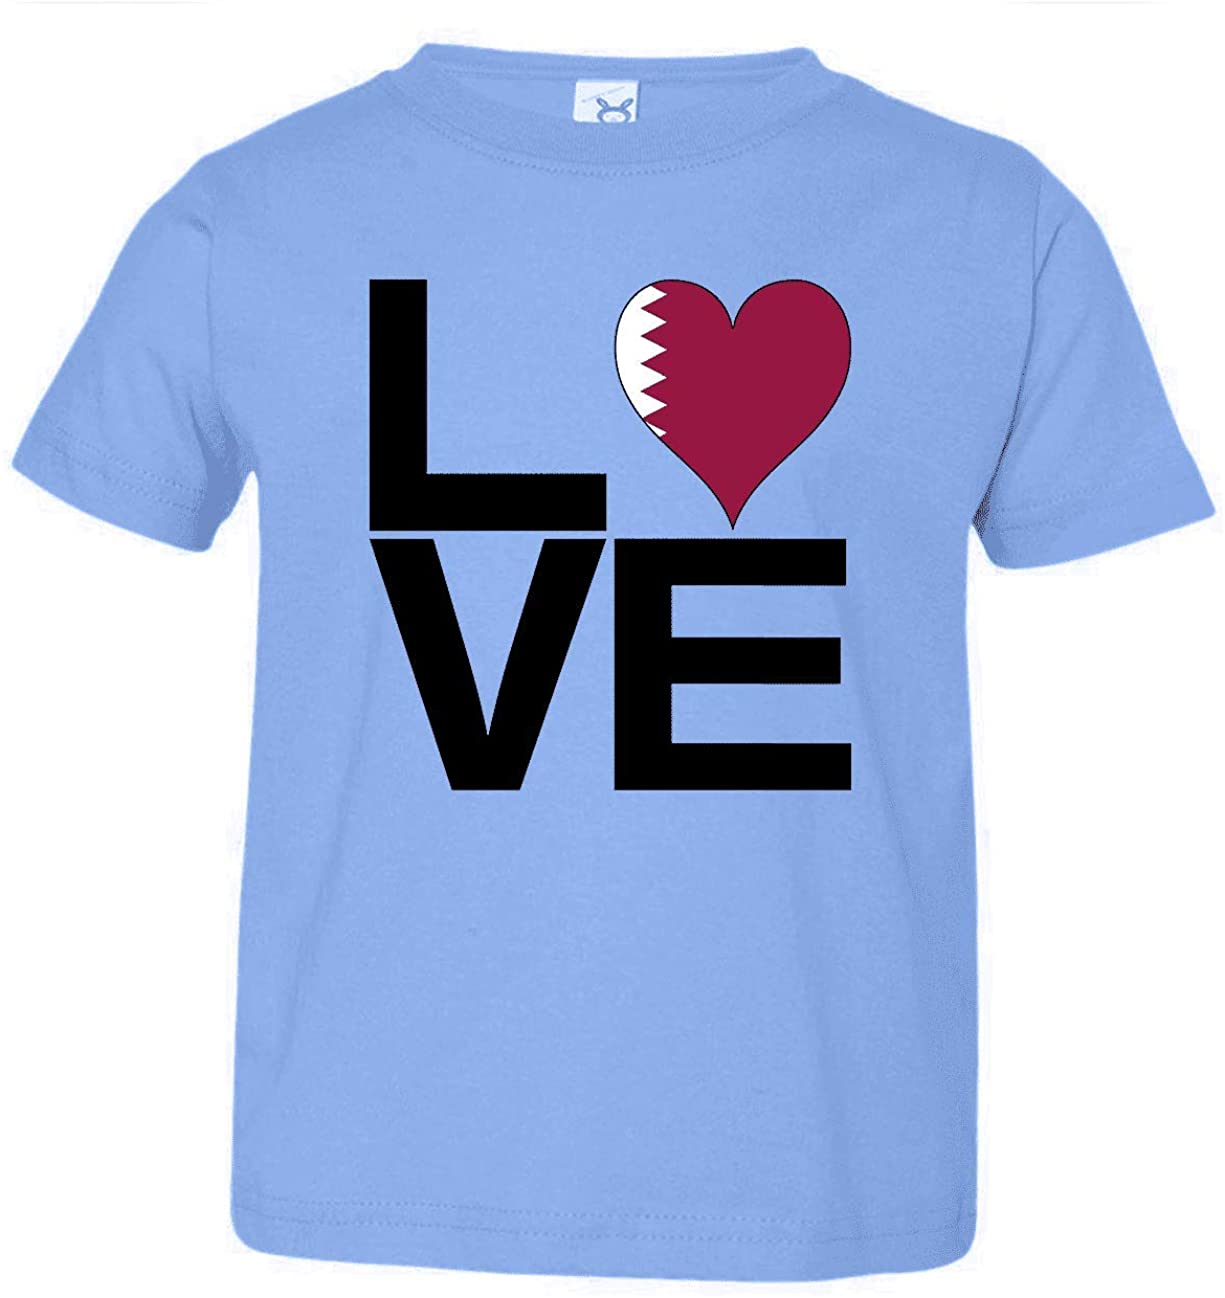 HARD EDGE DESIGN Toddler's Love Block Qatar Heart T-Shirt, 3T, Carolina Blue